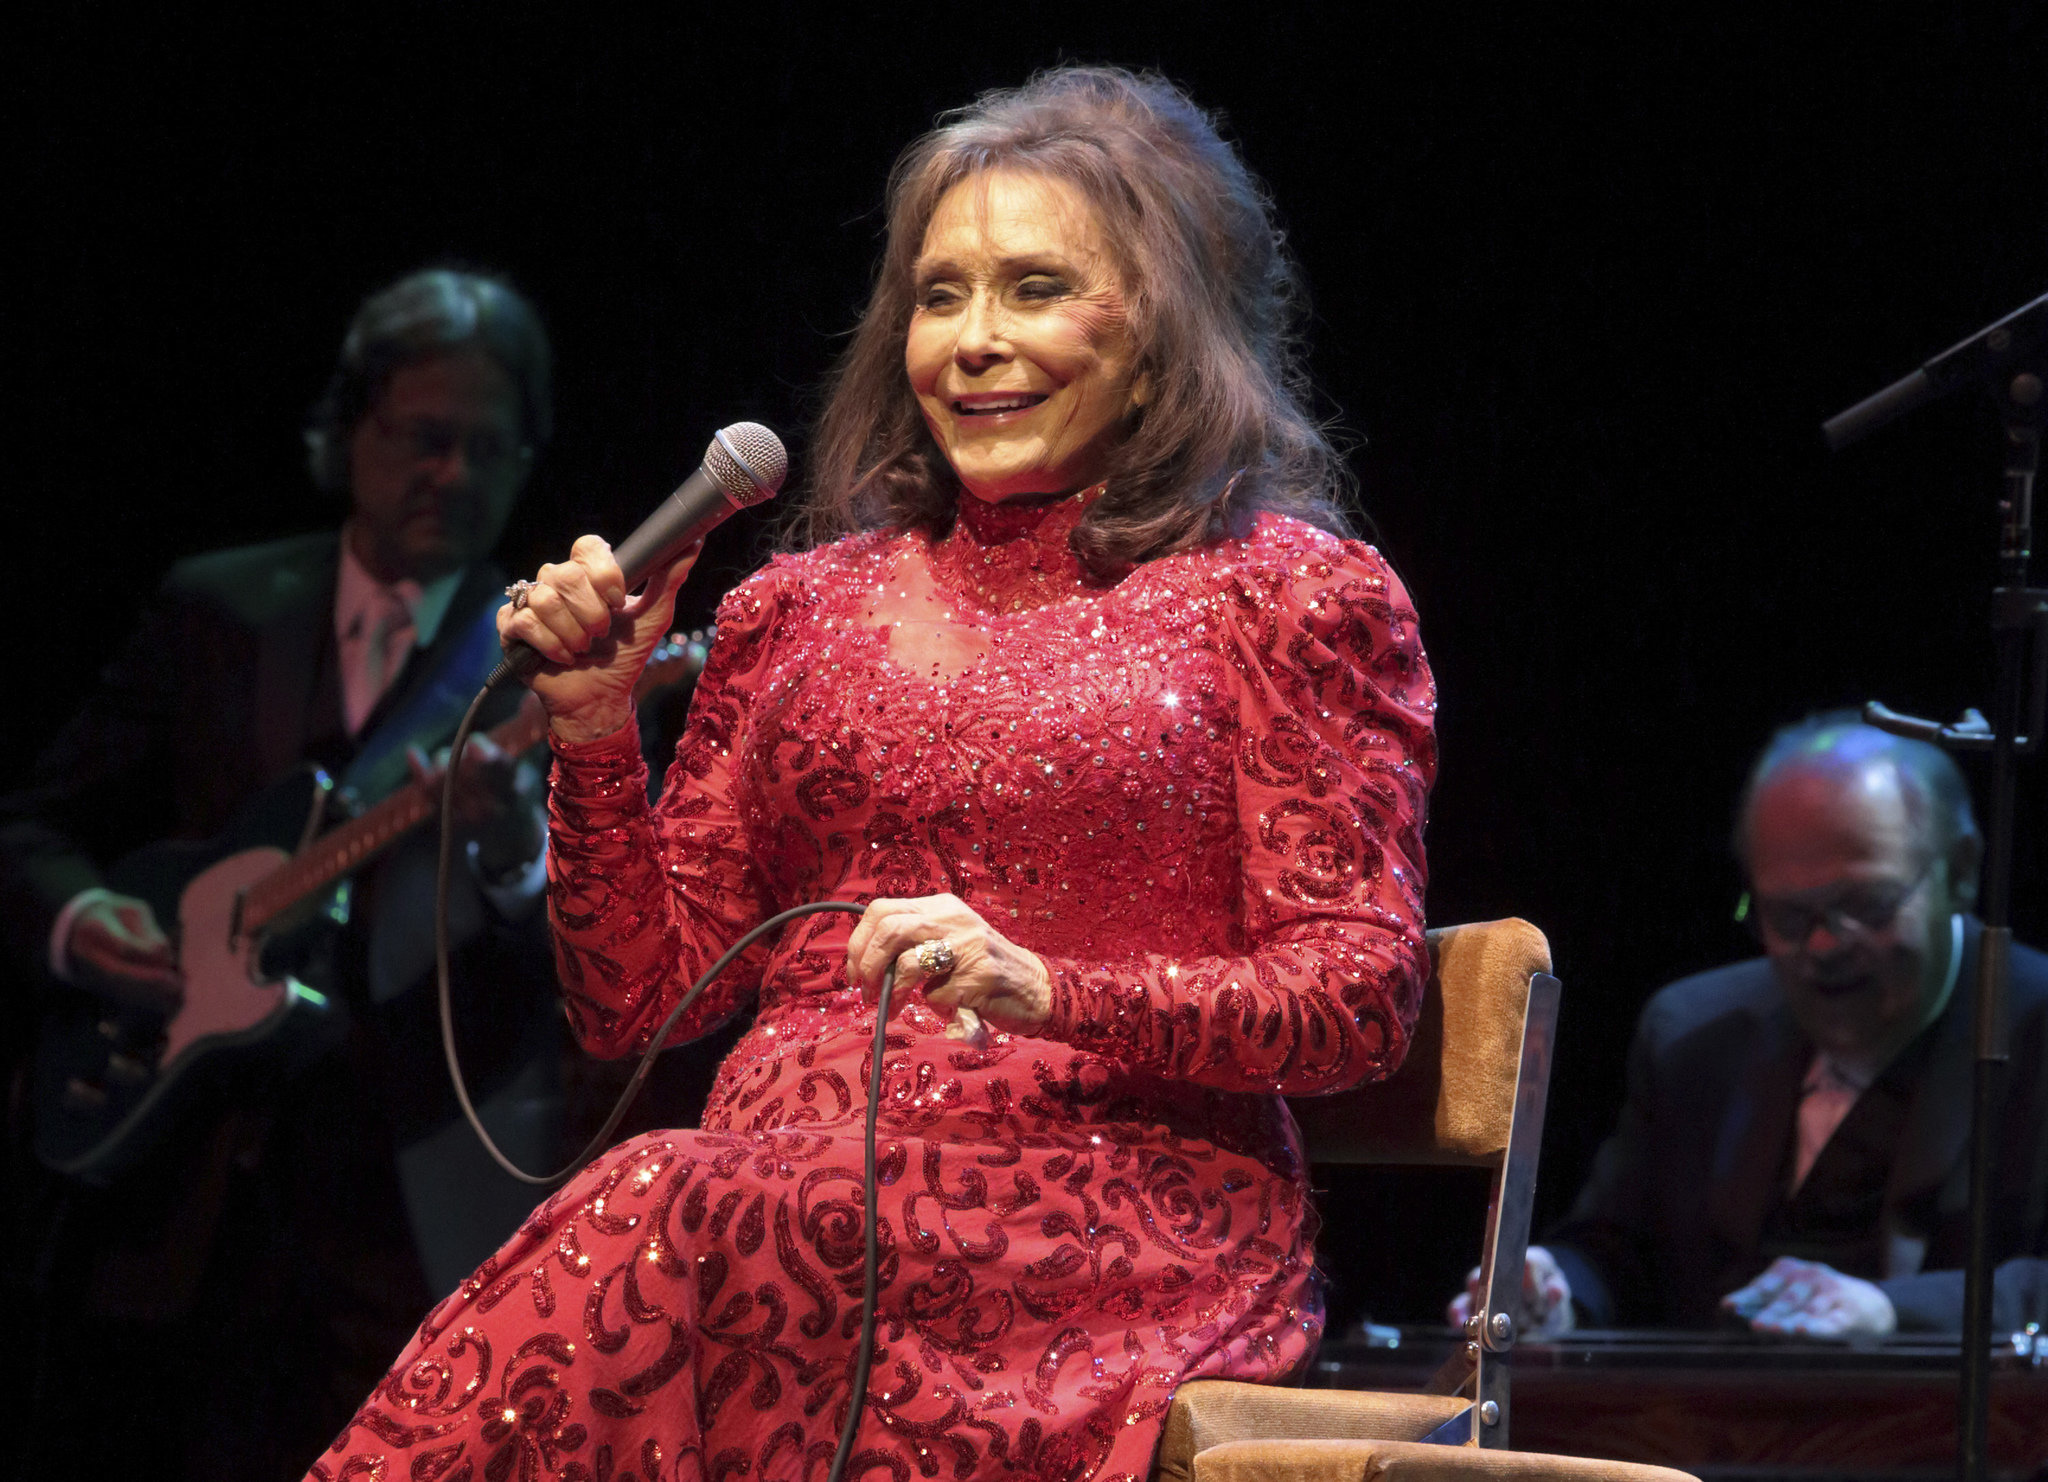 Country legend Loretta Lynn hospitalized after having stroke